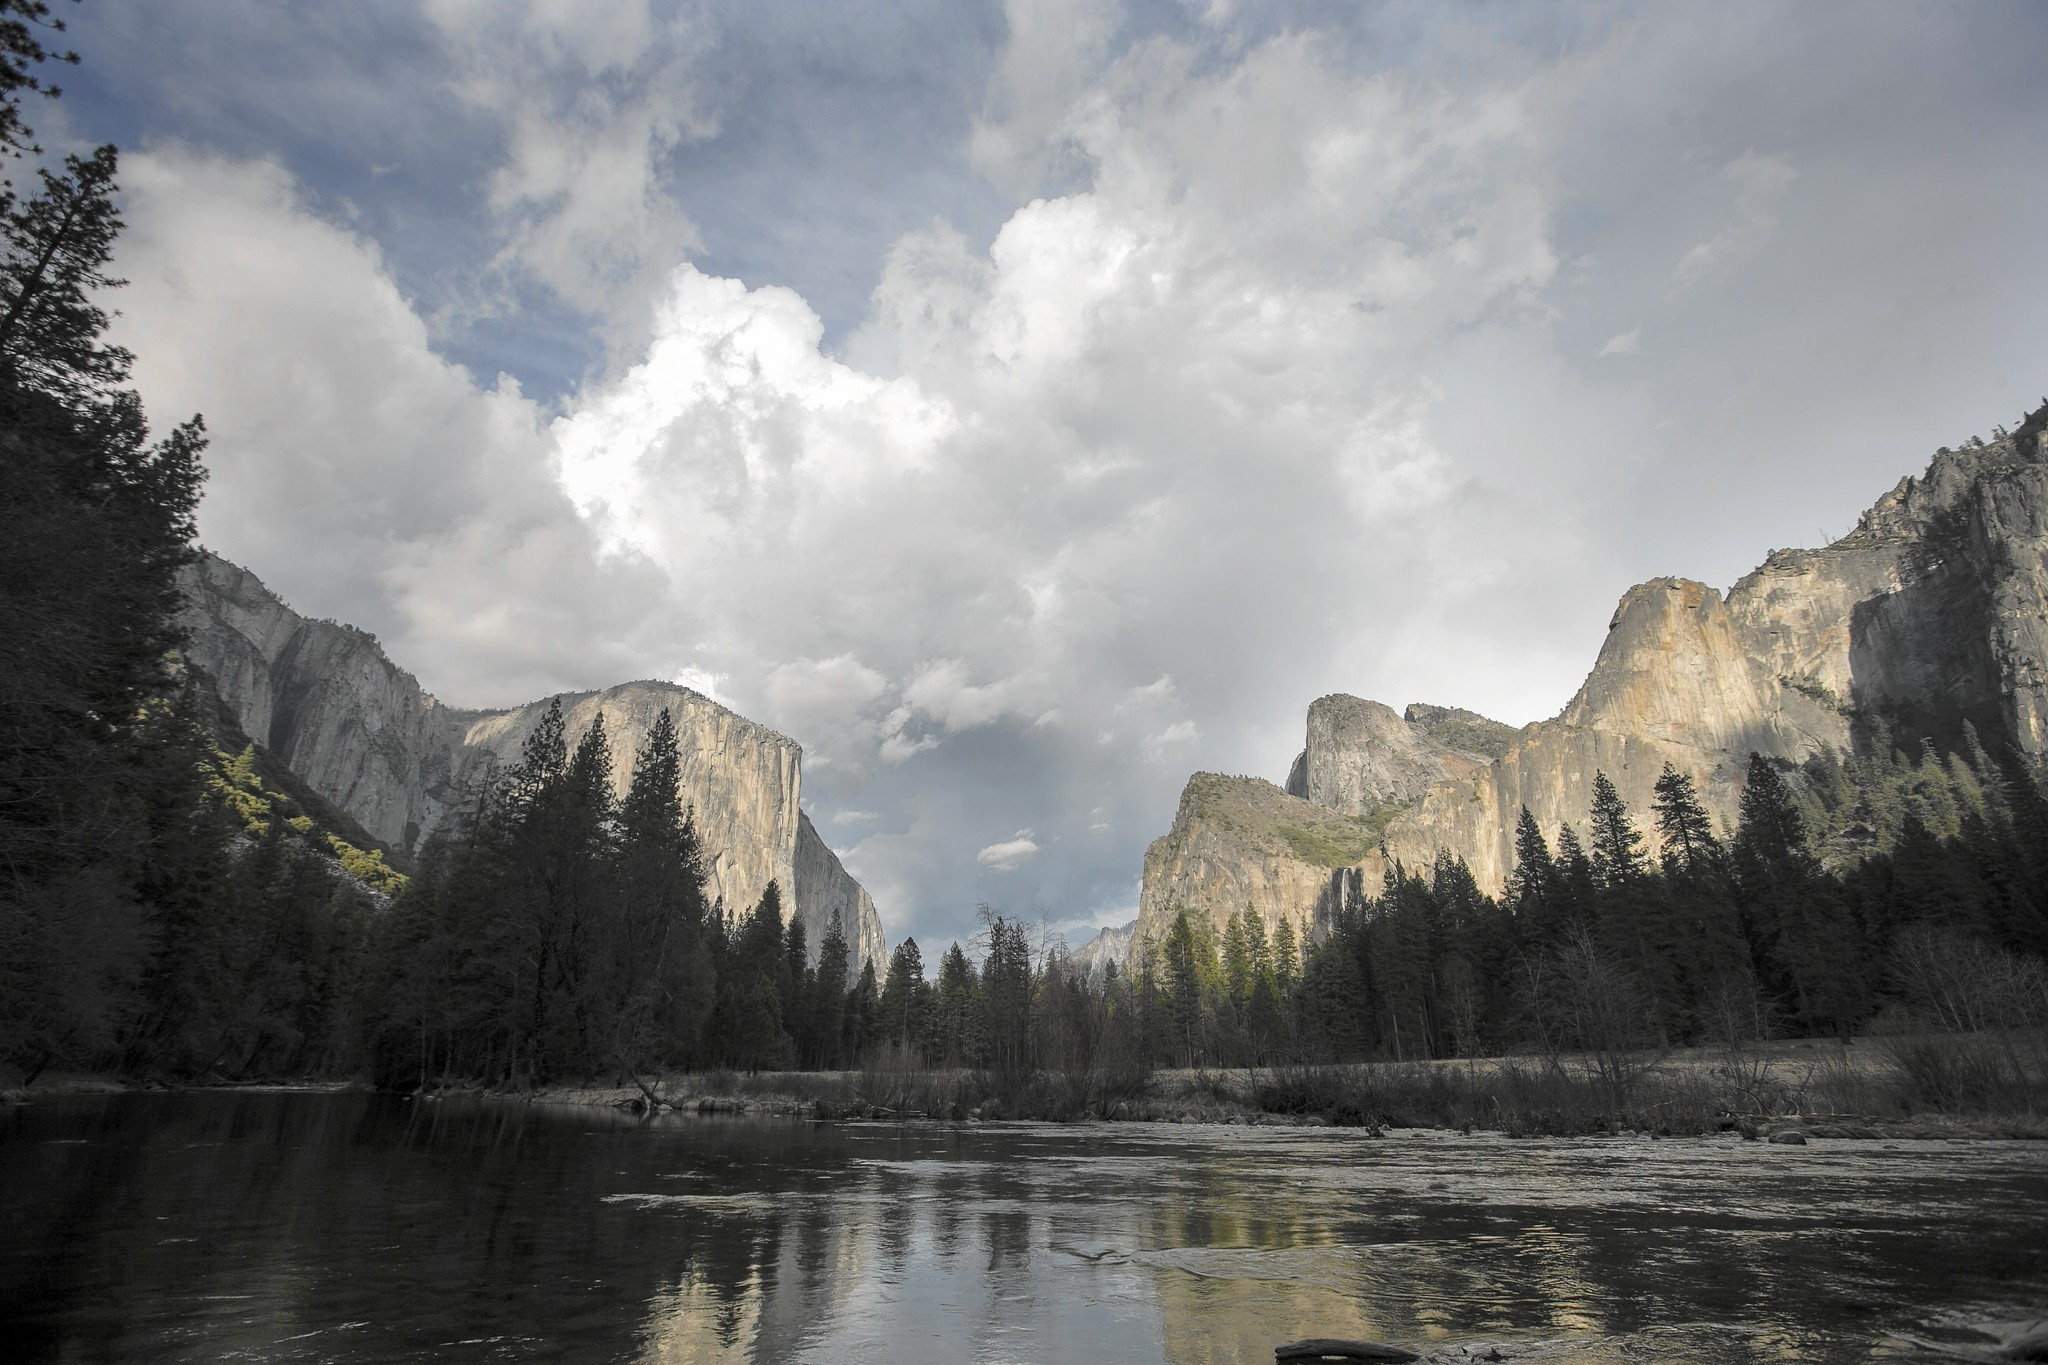 In store for visitors to Yosemite: a drier, browner park